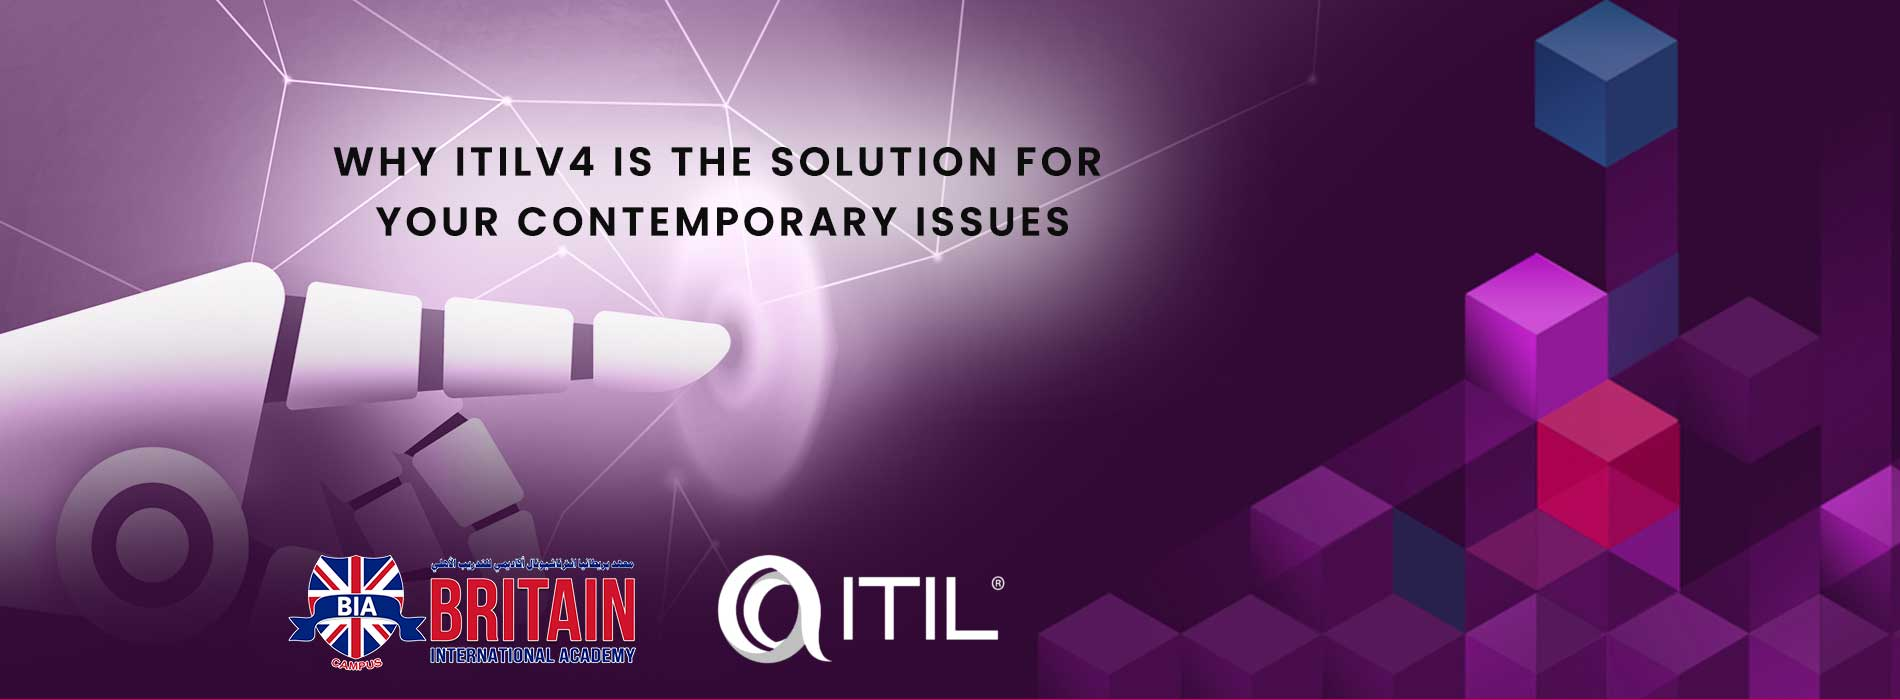 WHY ITIL 4 IS THE SOLUTION FOR YOUR CONTEMPORARY ISSUES